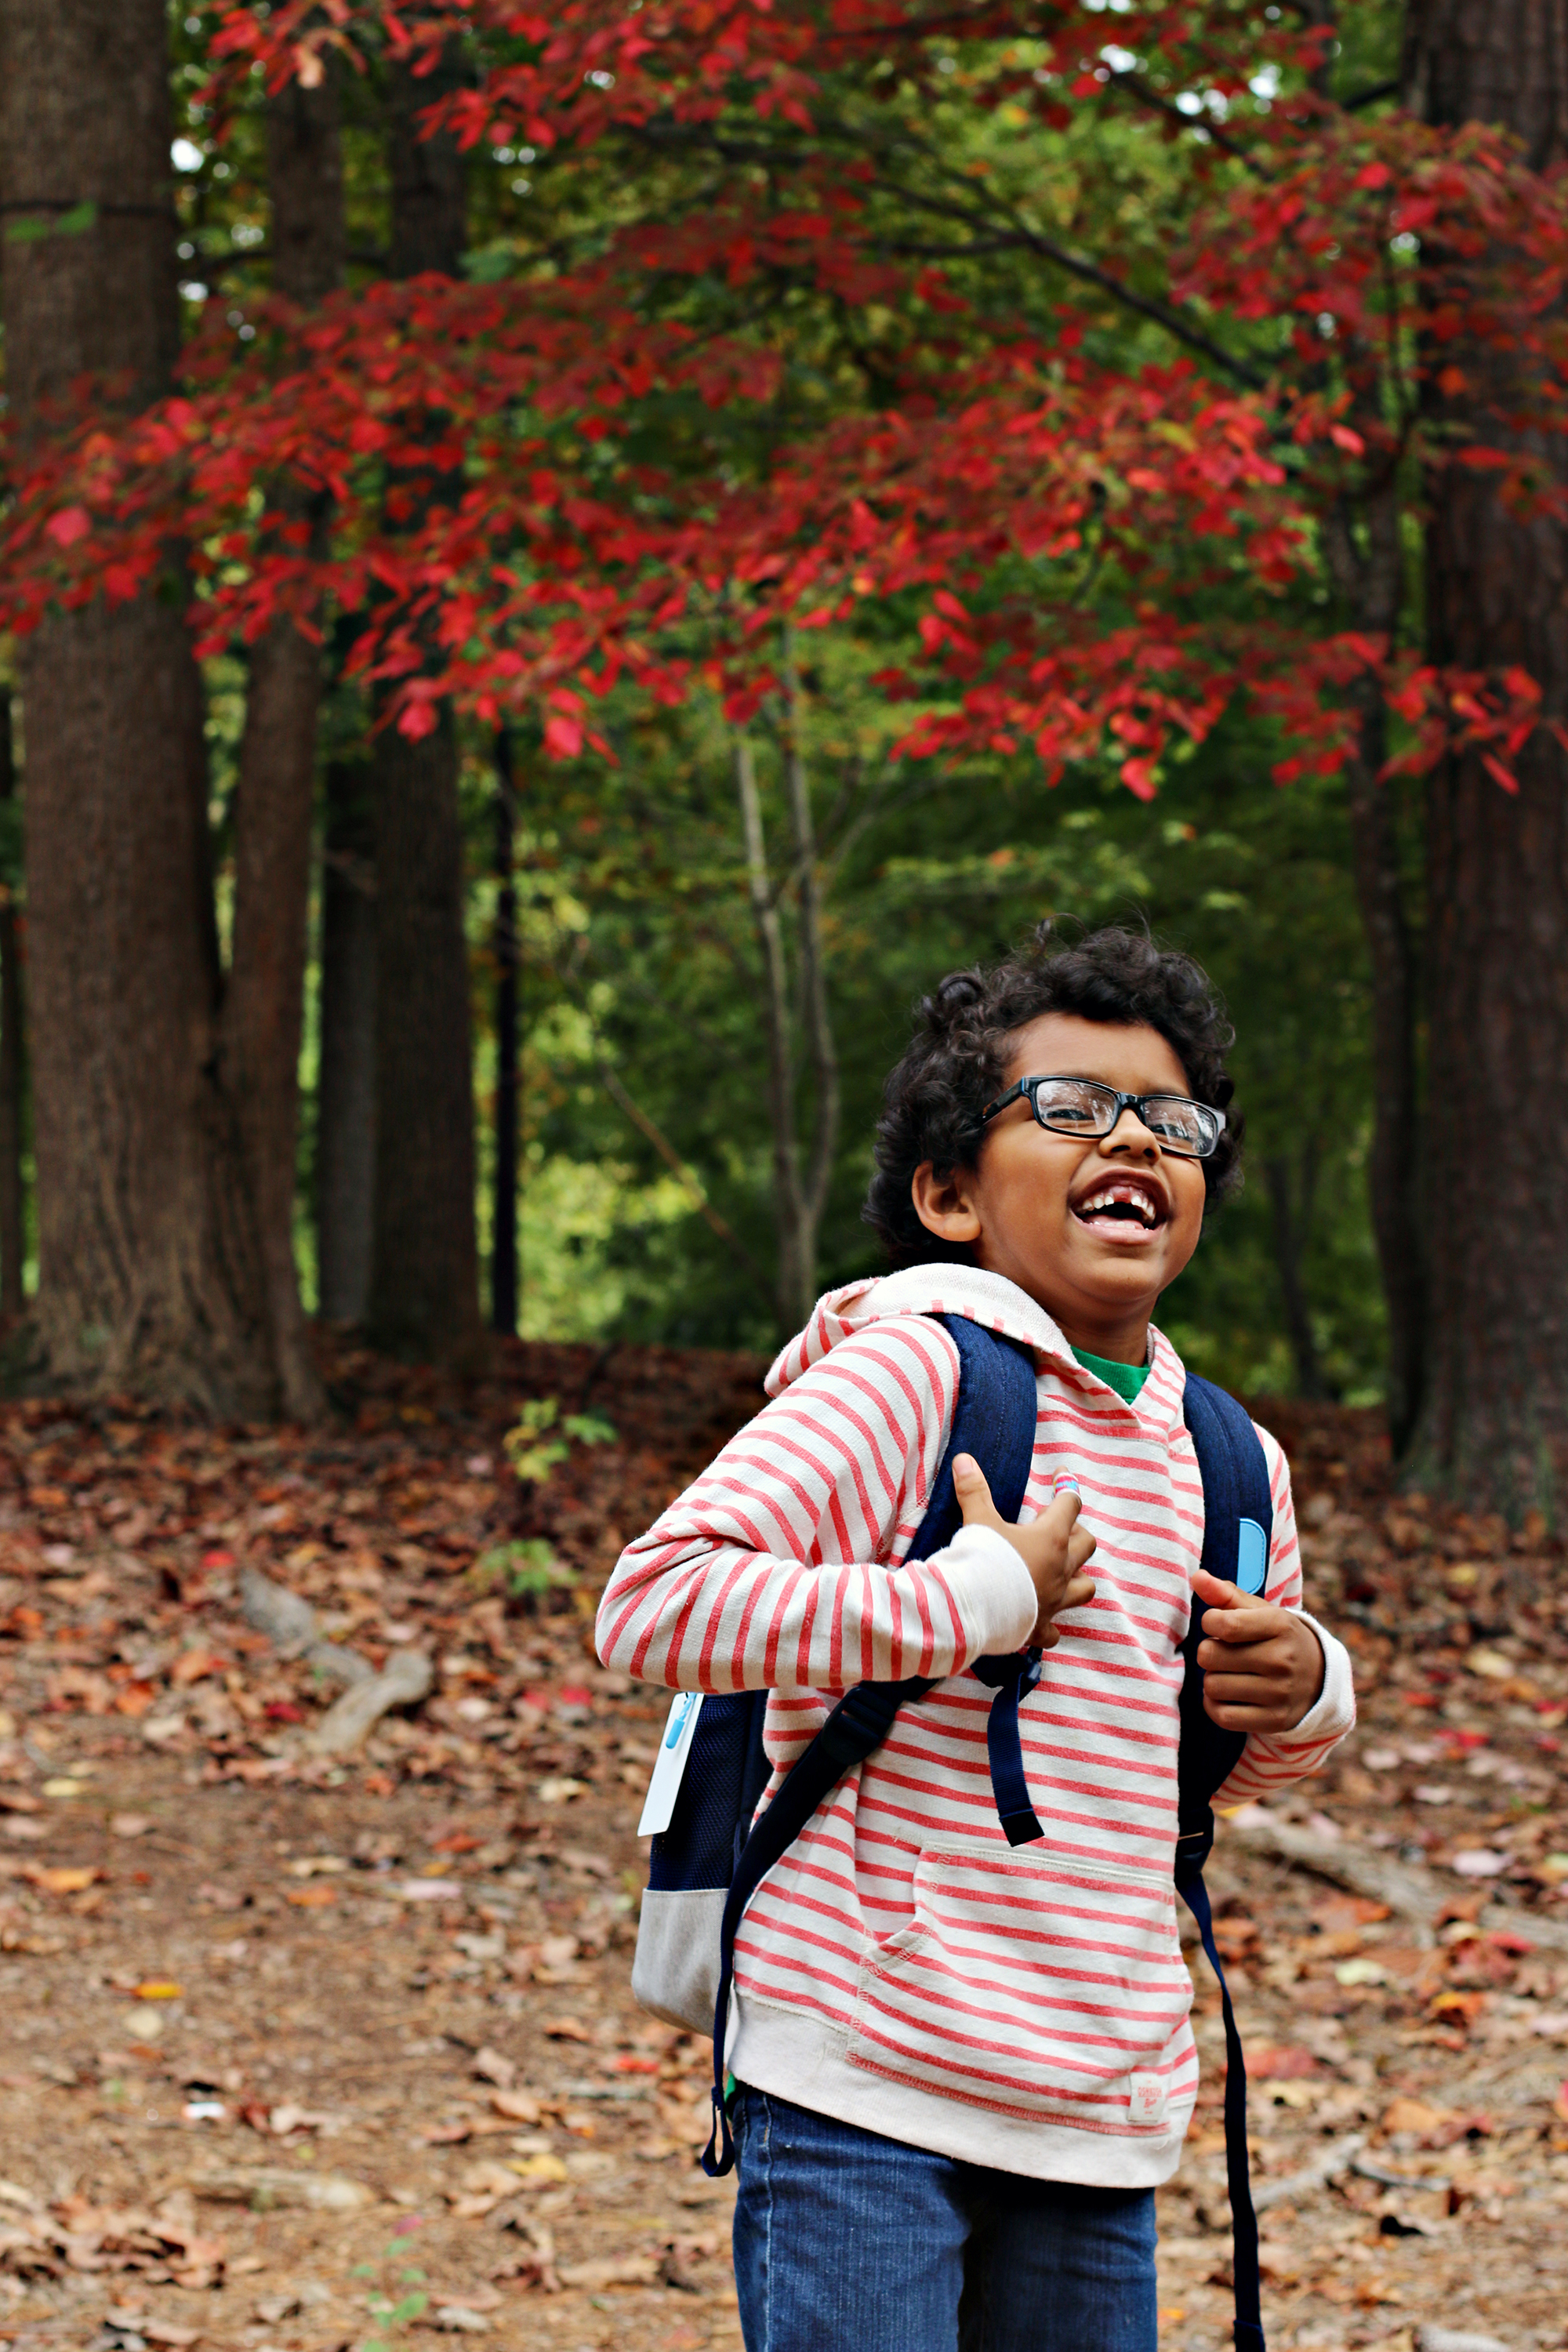 Laughing boy in front of a red tree, holding his backpack.